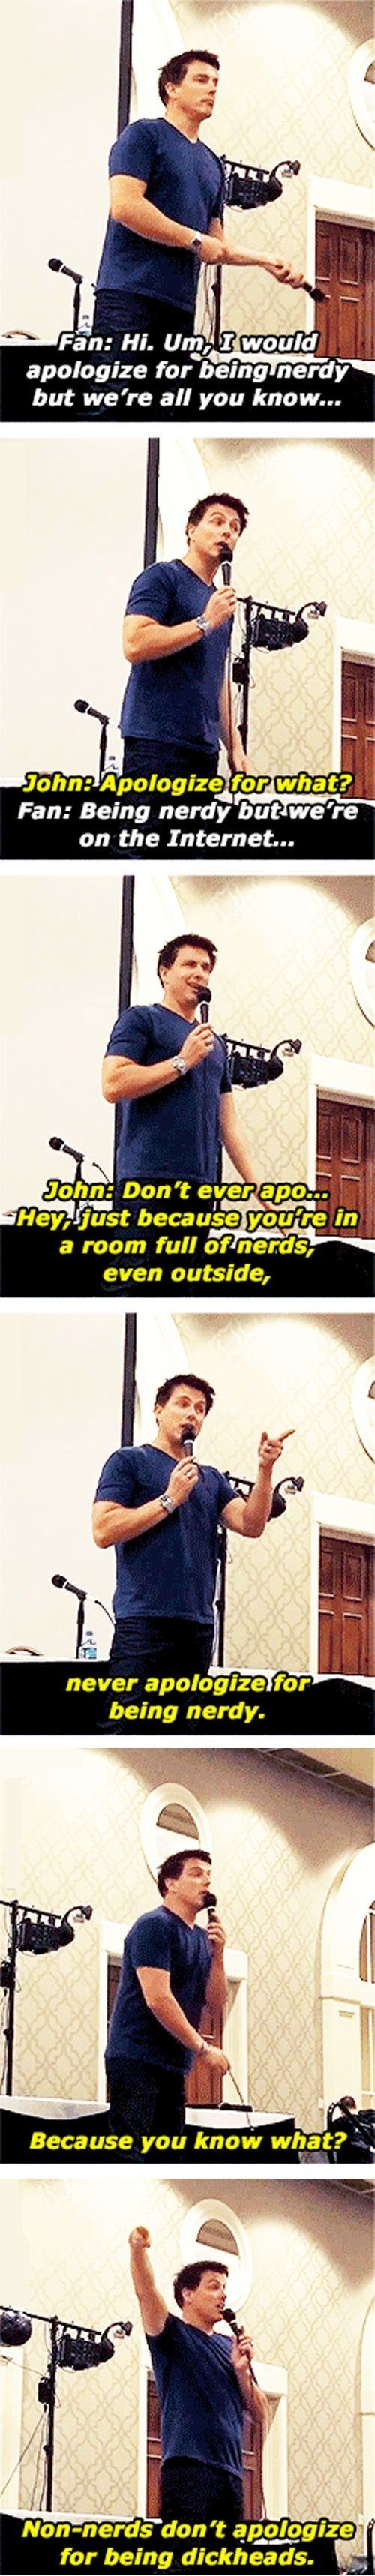 John Barrowman Knows The Difference Between Nerds and Everyone Else